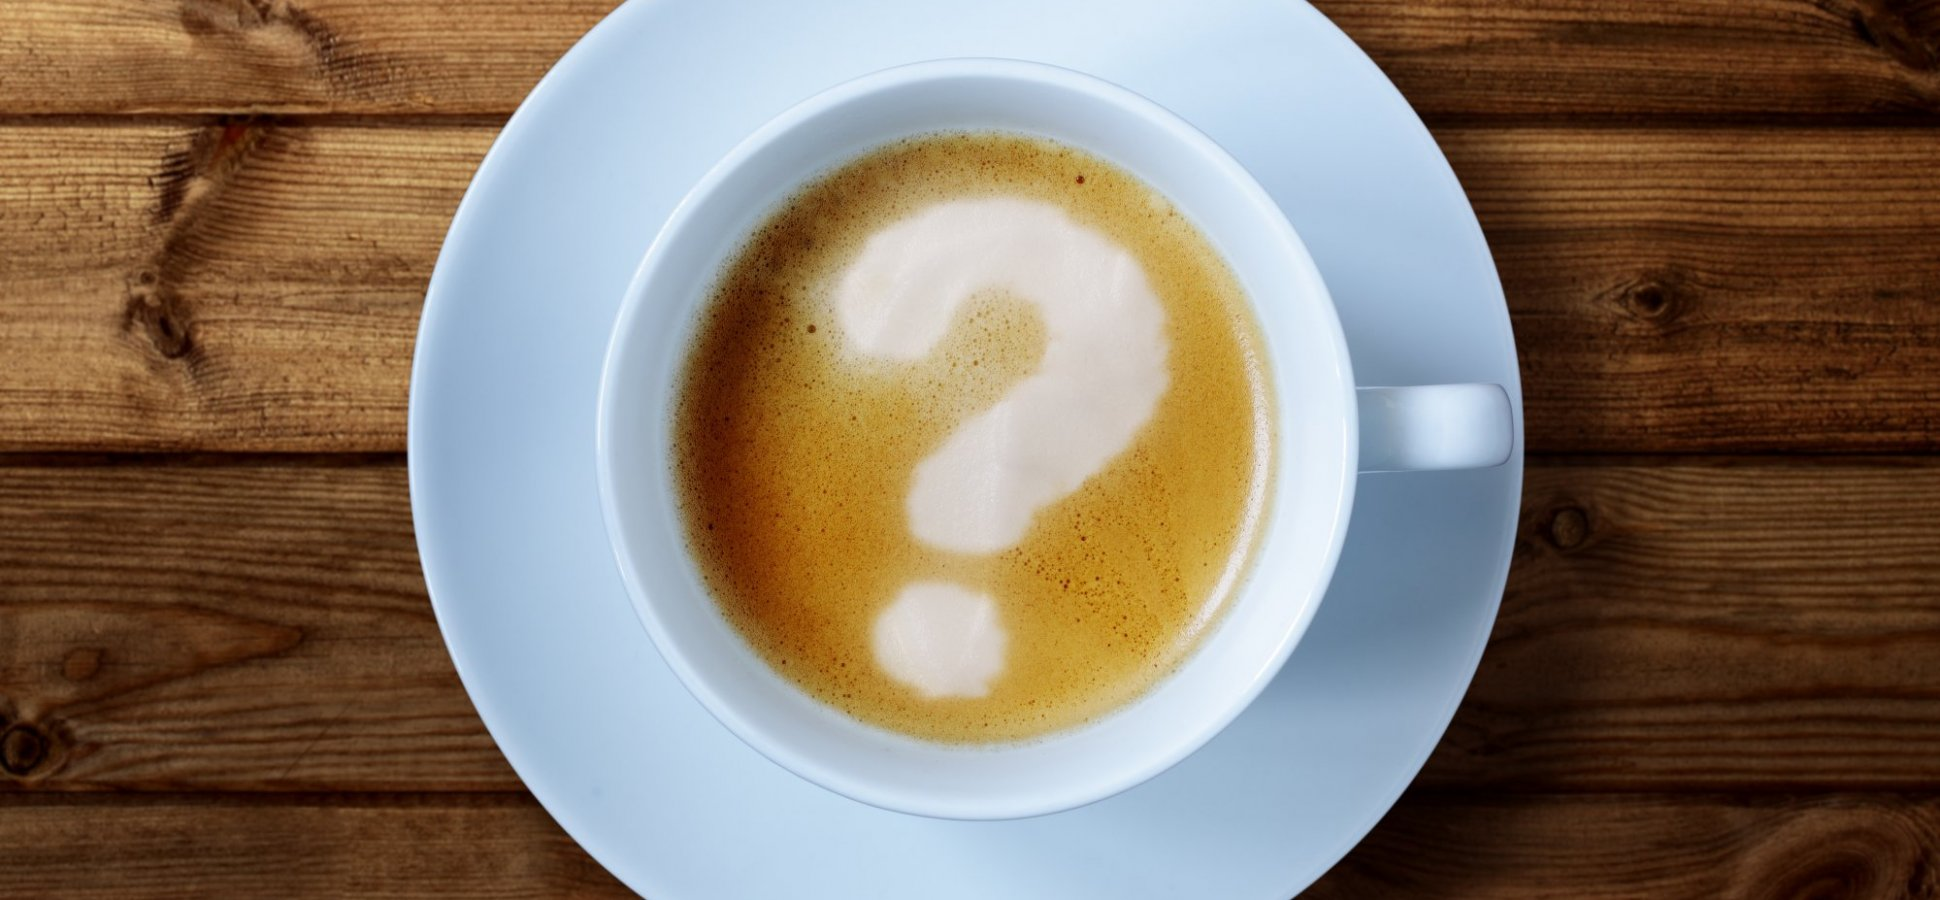 6 Questions You Should Ask Yourself Every Morning for a Happier, More Productive Day